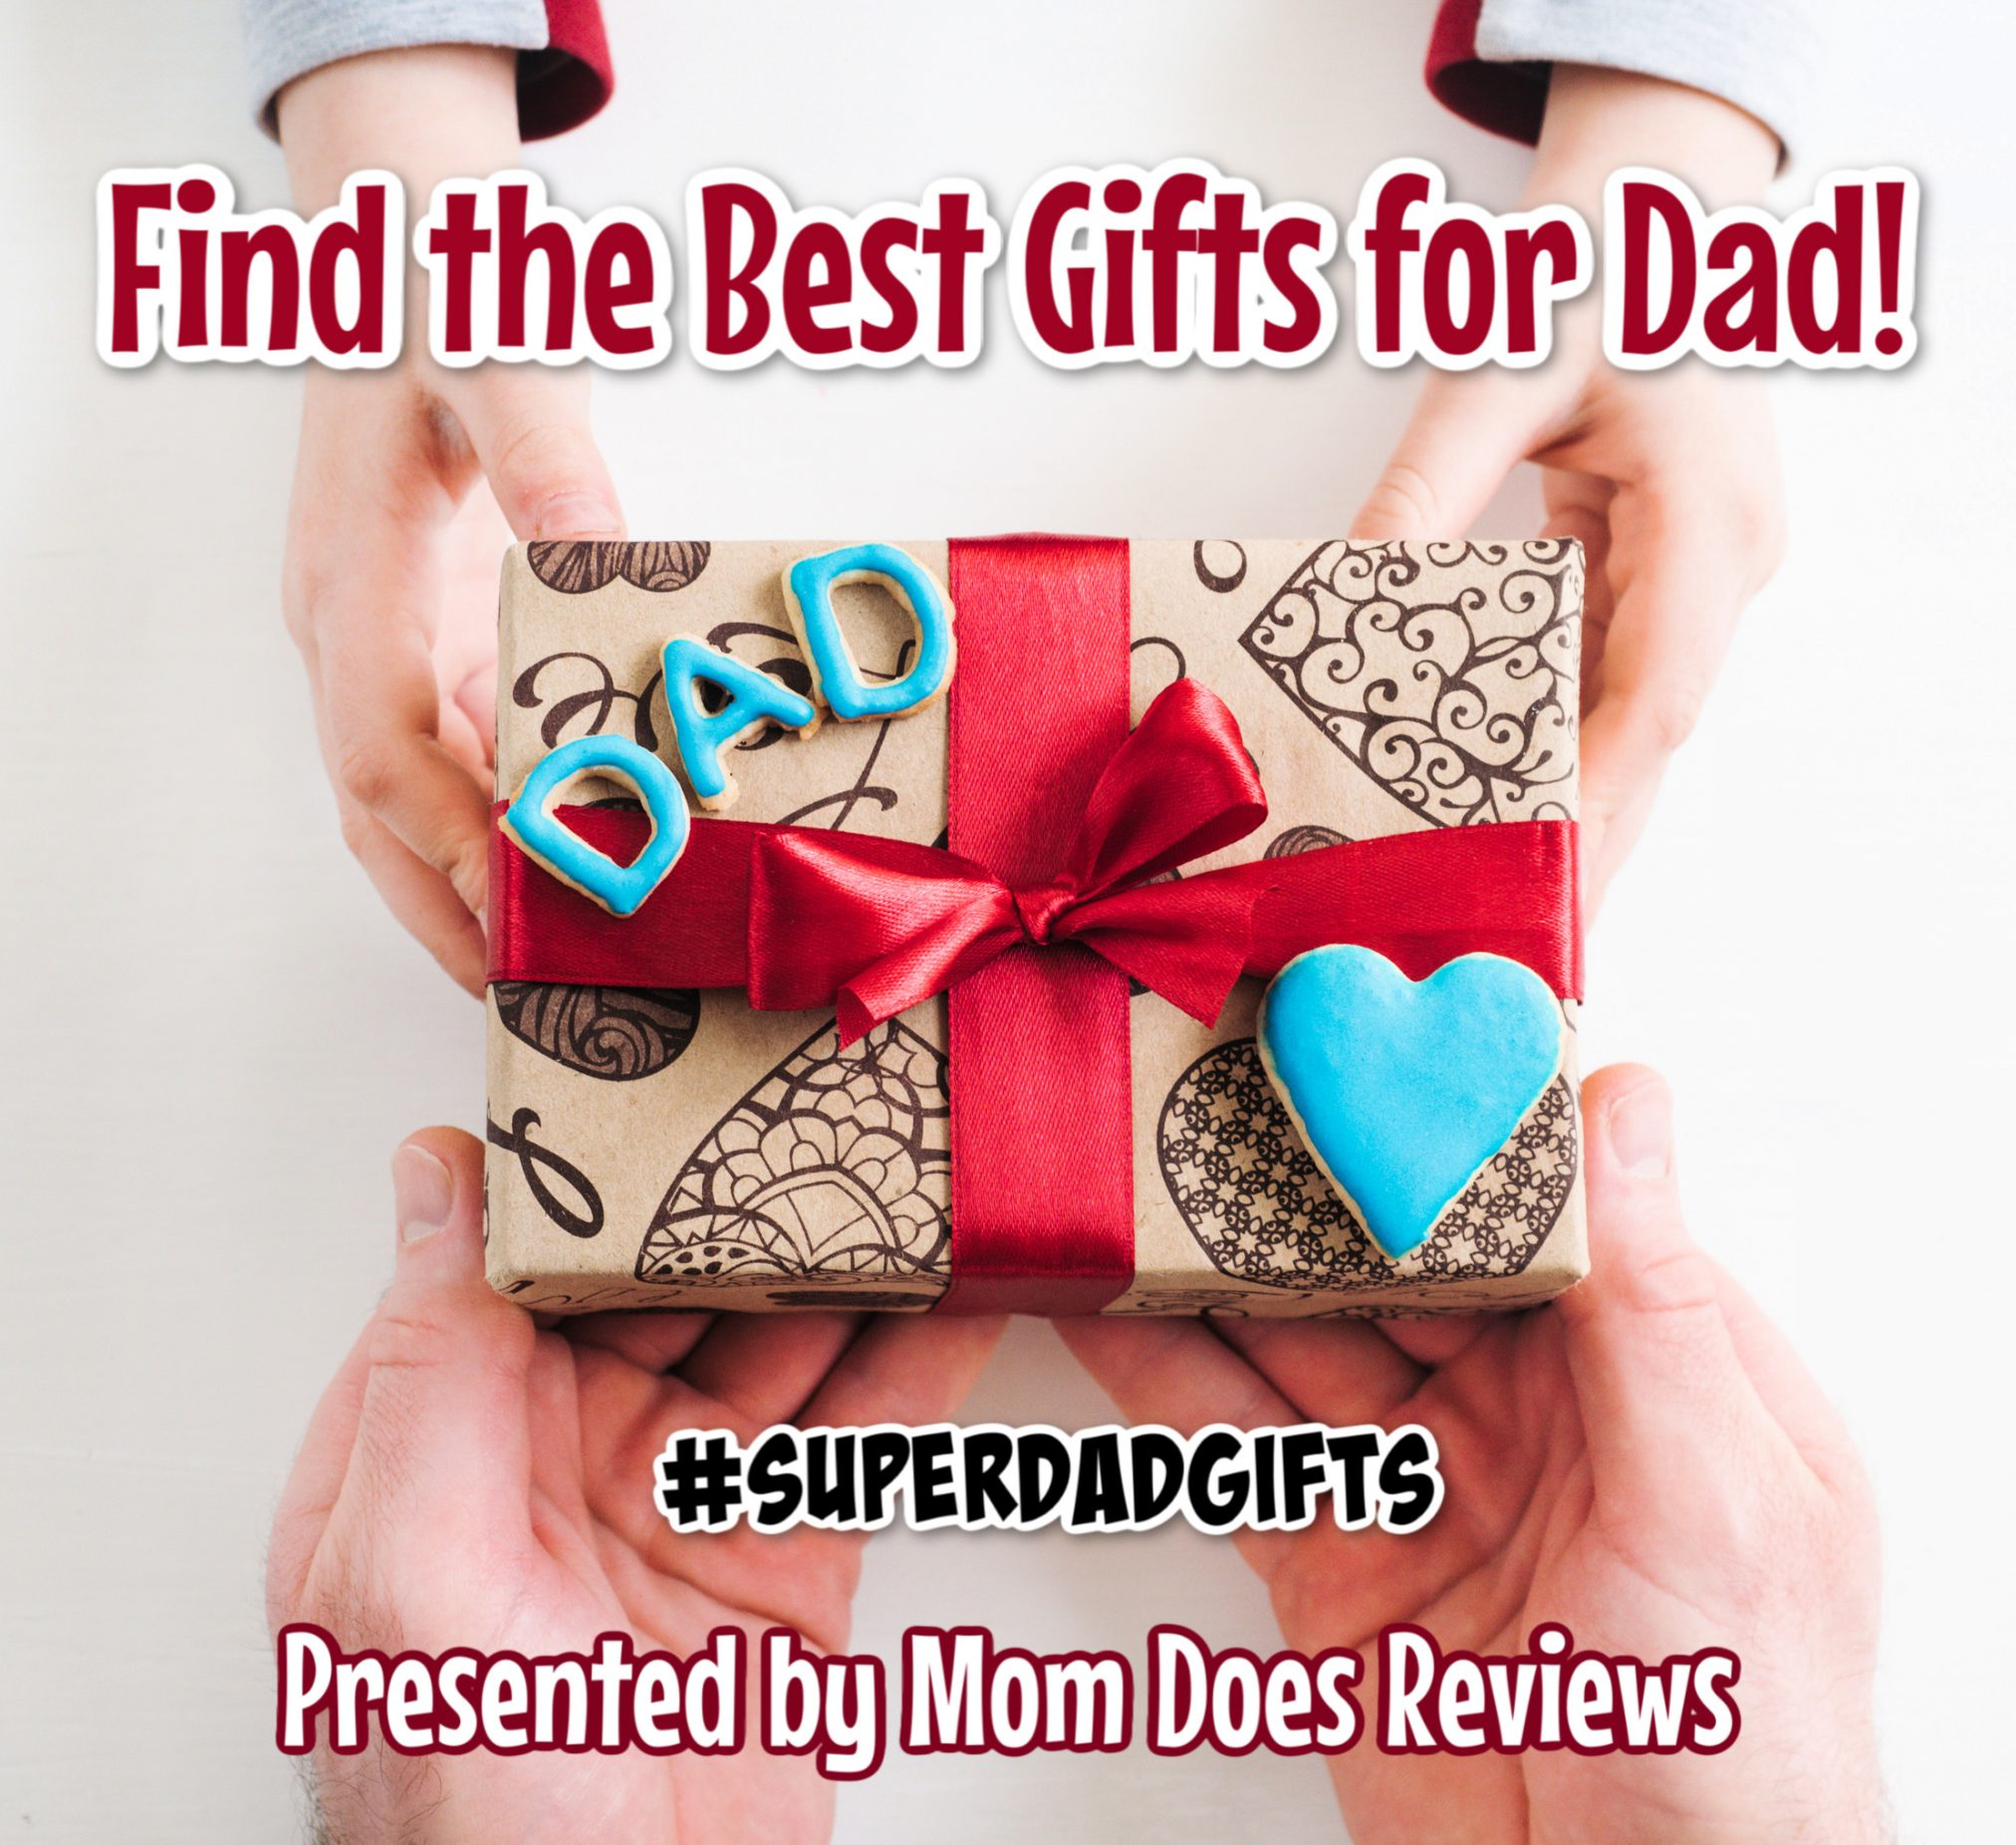 Best Gifts for Dad 2020 #SuperDadGifts